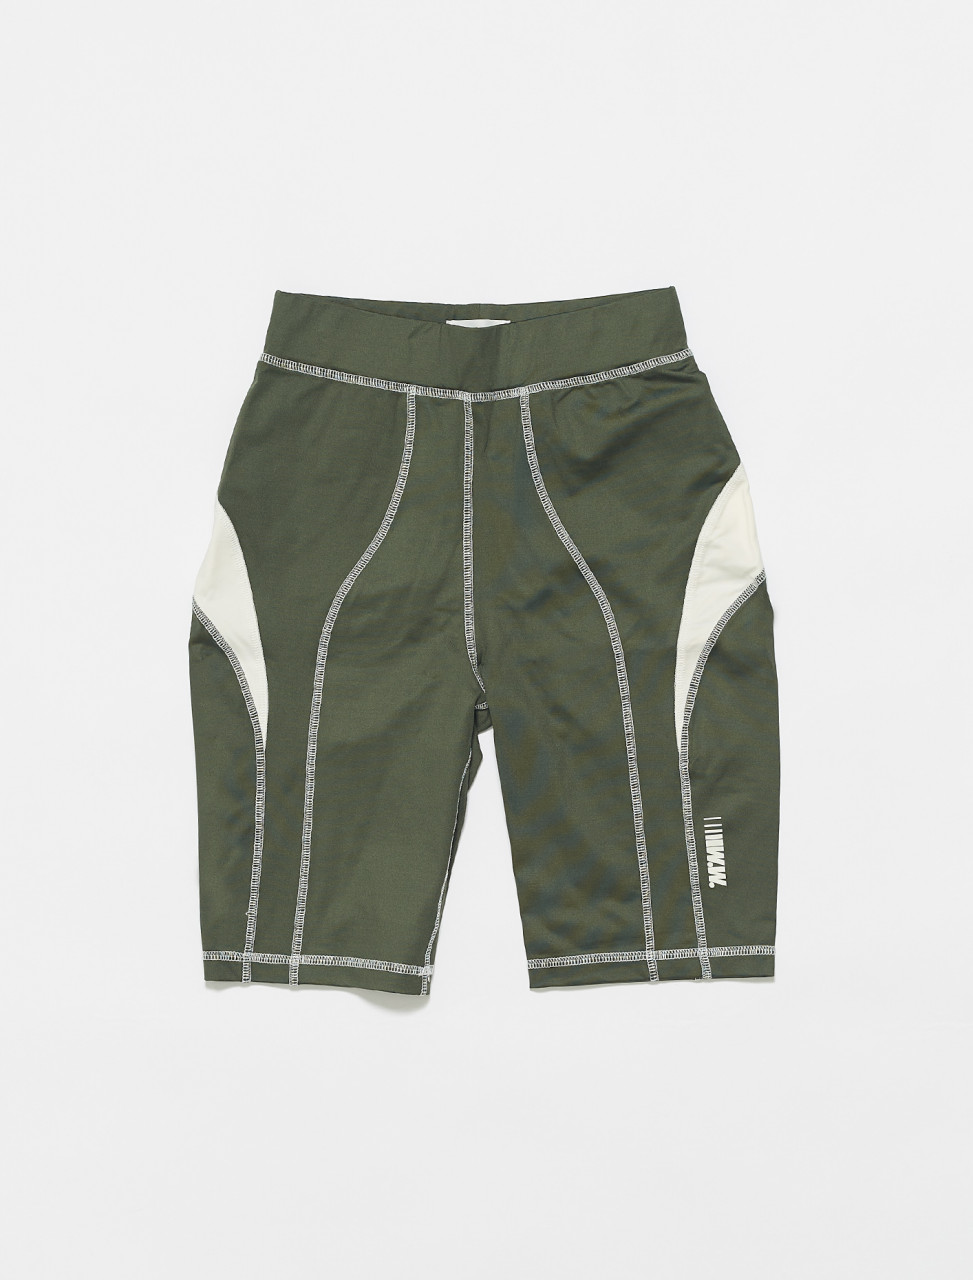 325-12011802-2478 WOOD WOOD ELENA SHORTS DARK GREEN